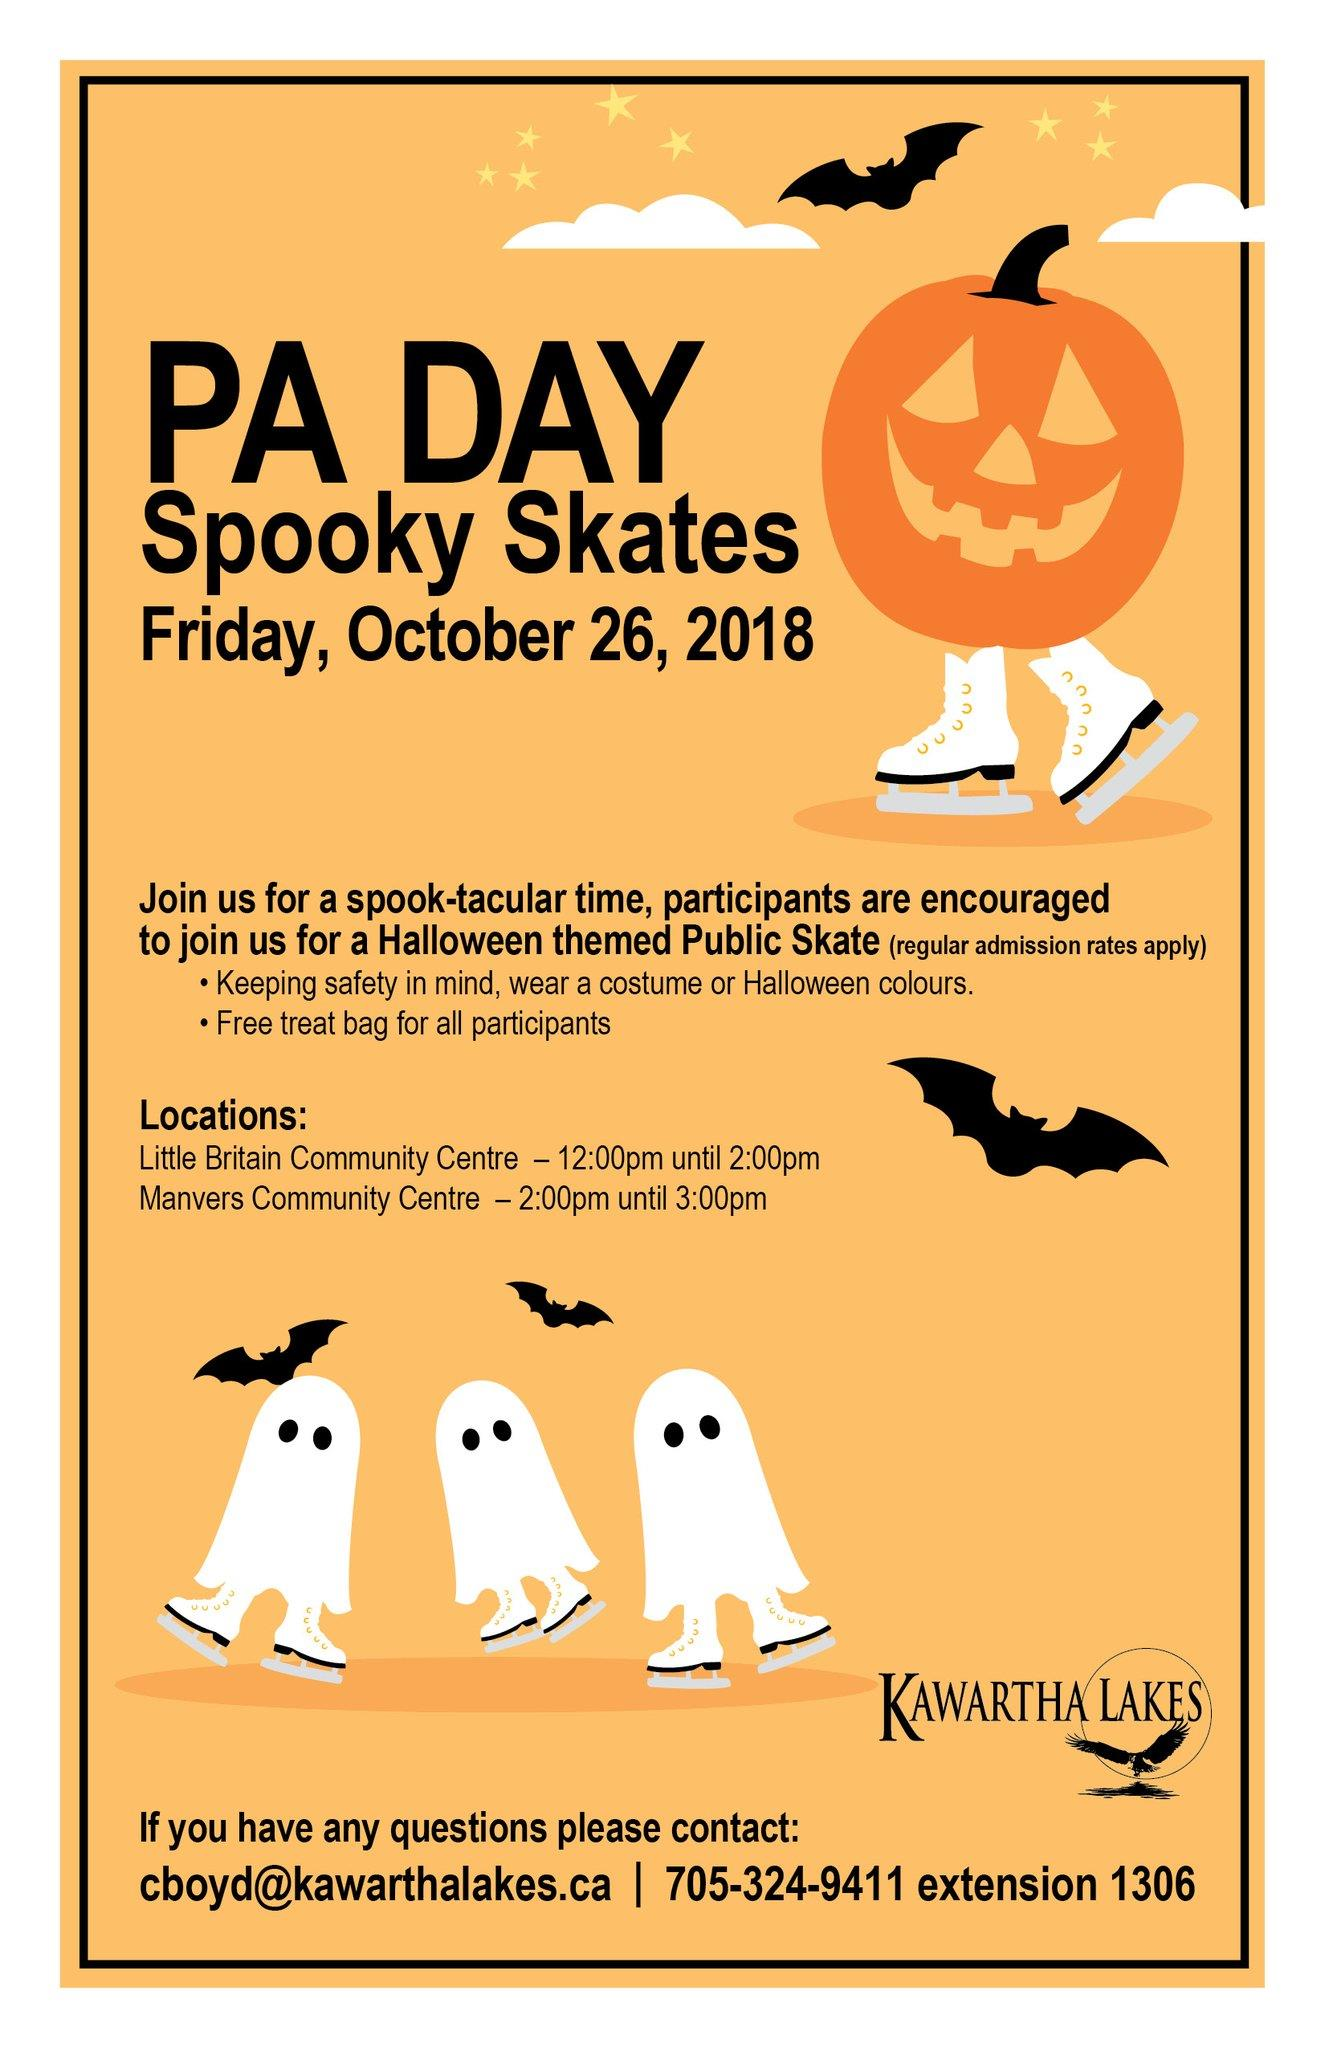 PA Day Spooky Skates Poster